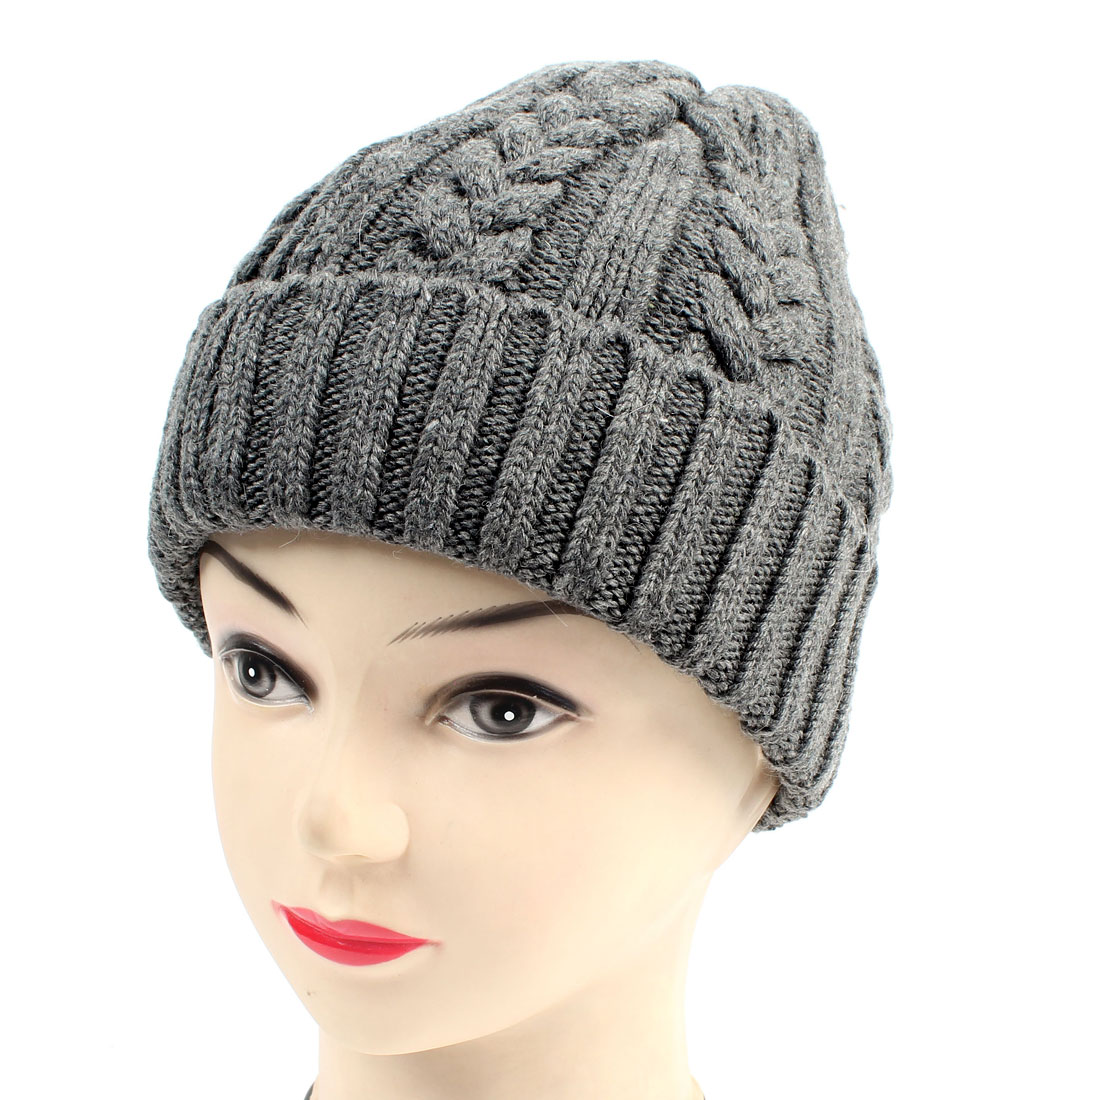 Winter Gray Ribbed Braided Crochet Beanie Hat Cap for Woman